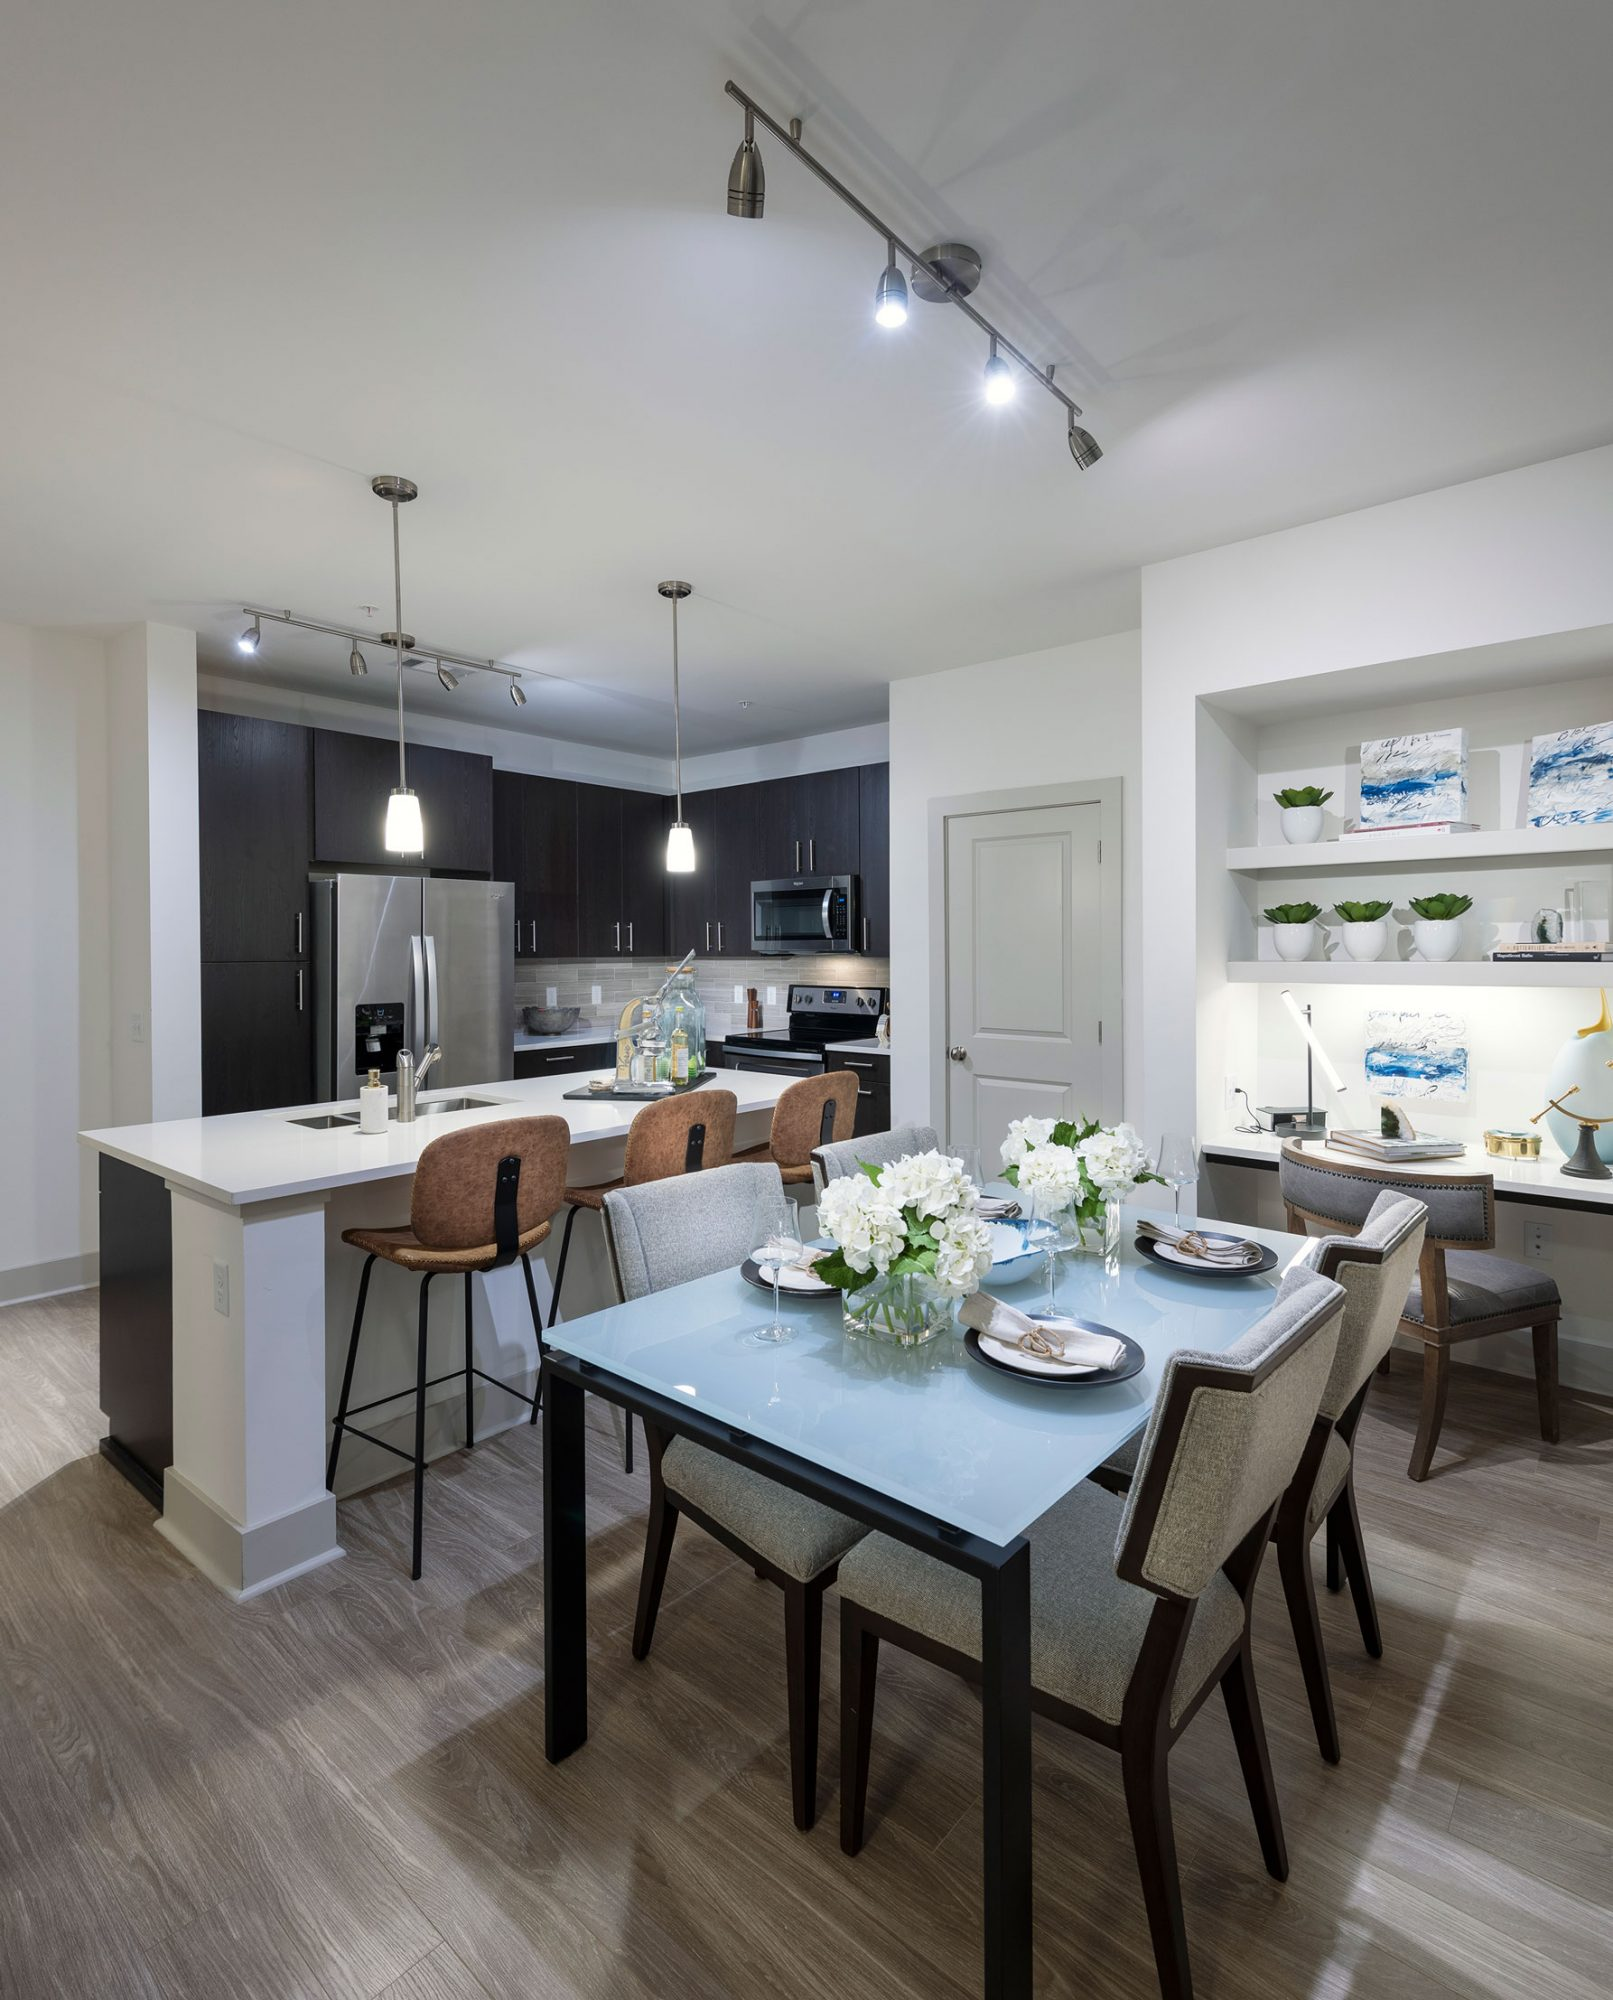 Open concept dining and kitchen with built-in desk, bar seating, wood like floors, stainless steel appliances and built-in shelving